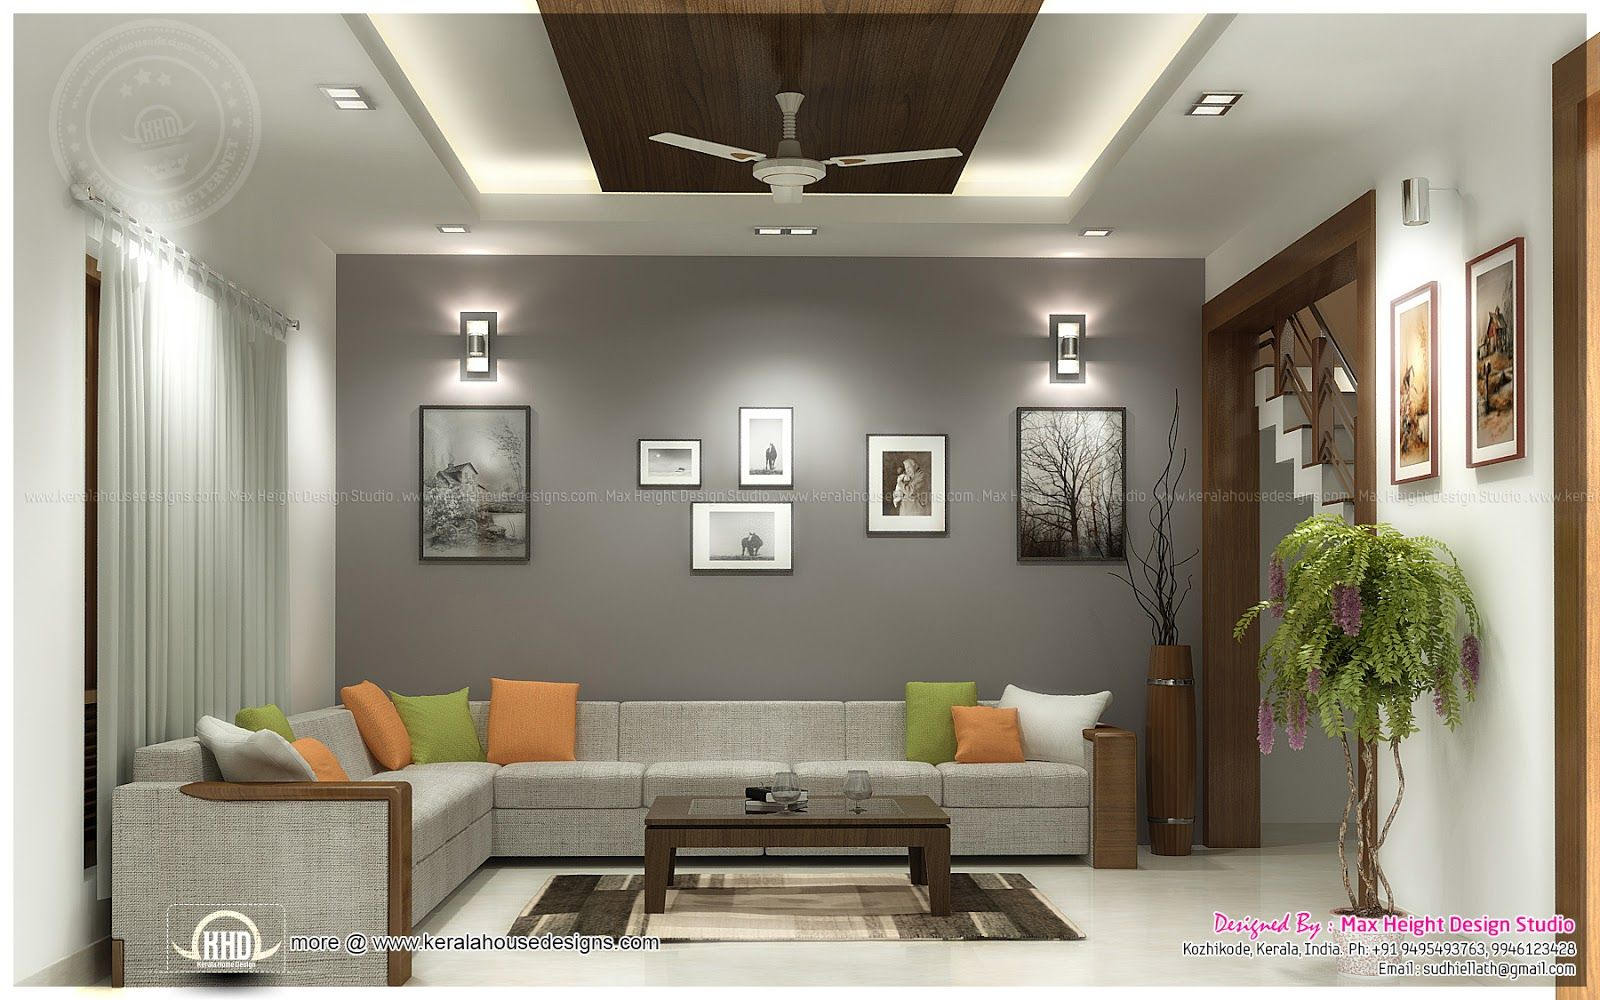 Beautiful interior ideas for home kerala design and people furniture also best decor images luxury houses apartment rh pinterest